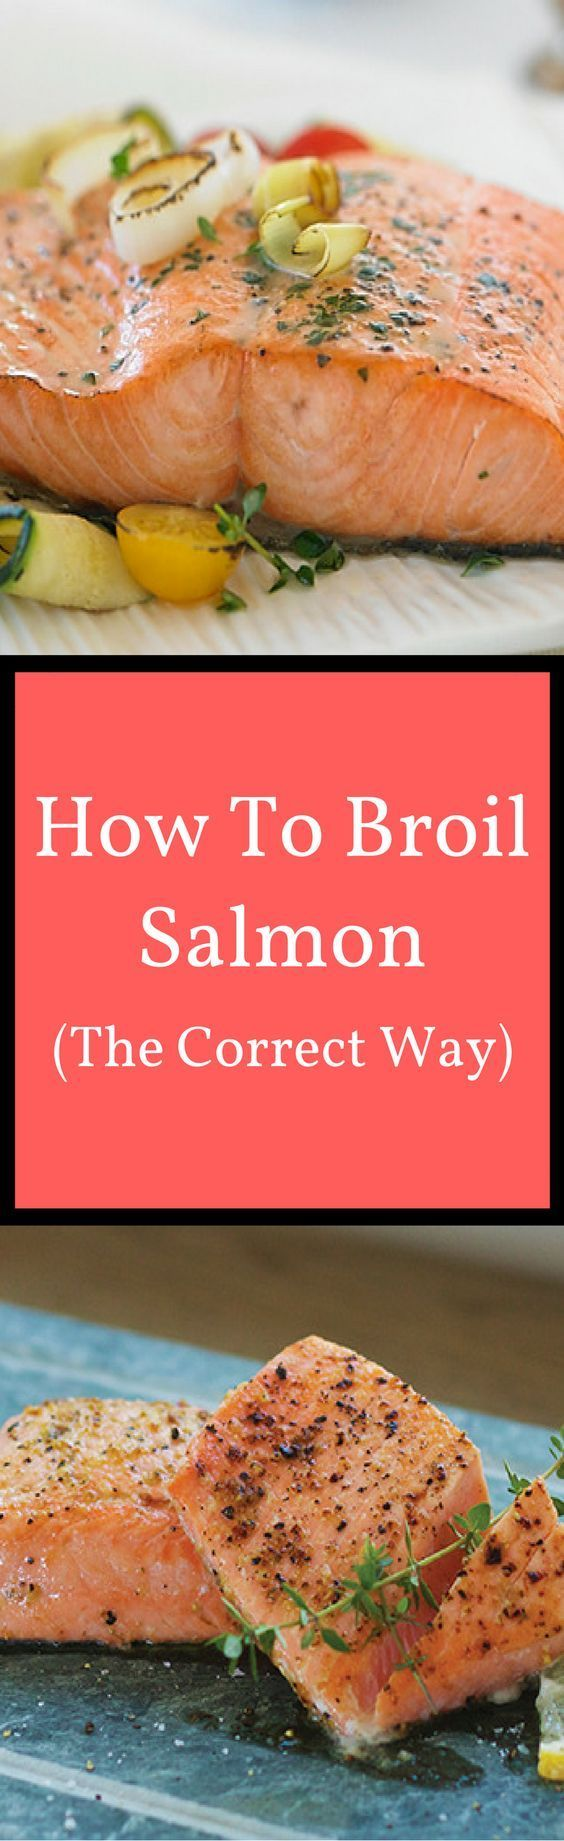 How To Bake Salmon Toaster Oven By Leila Abouzeid ~how To Broil Salmon~  Watch Our Short How To Video And Discover The Correct